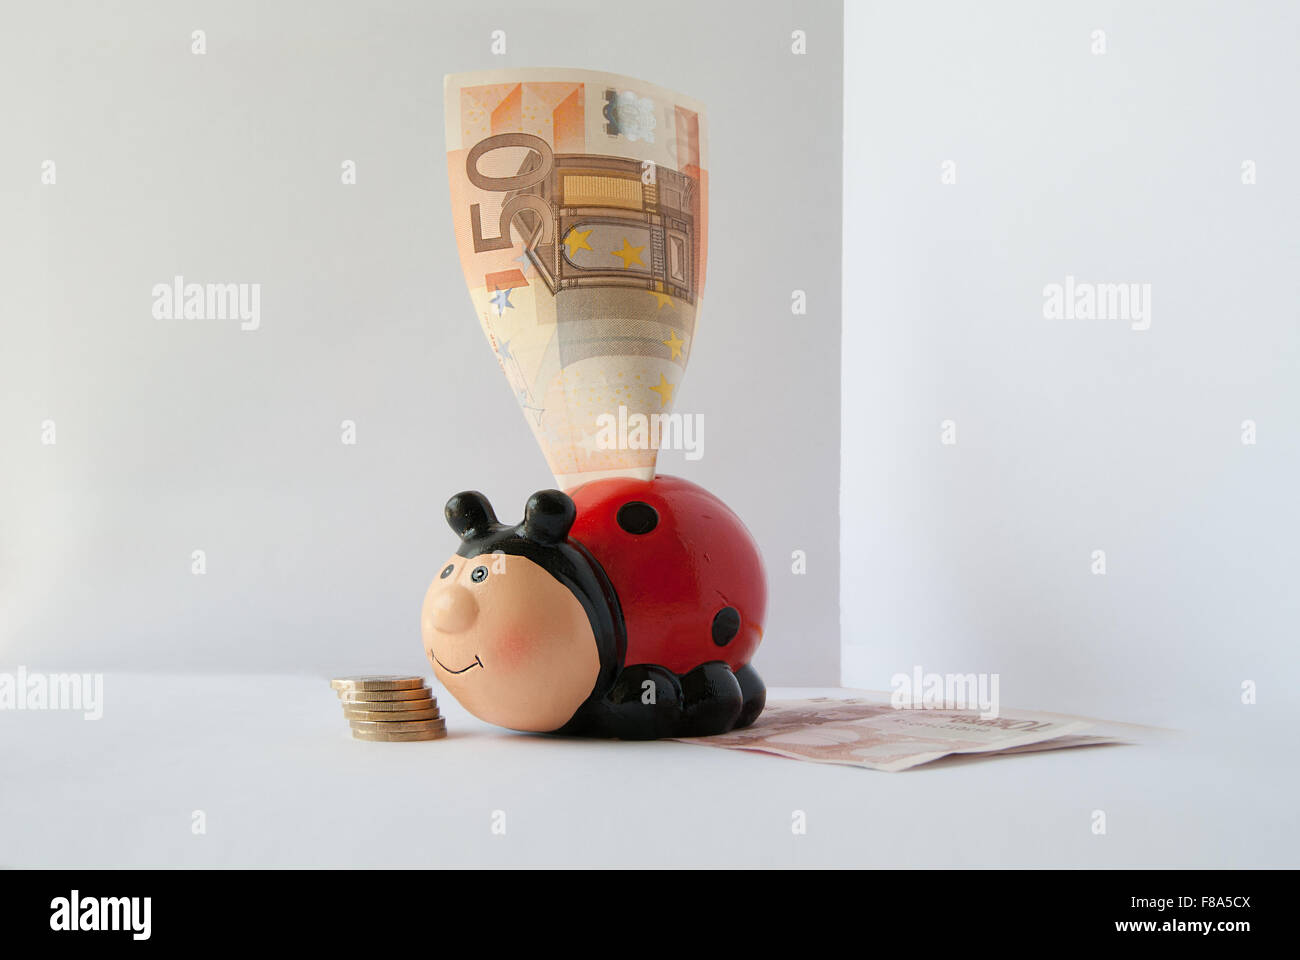 Piggy Bank for money in form of red ladybug - Stock Image